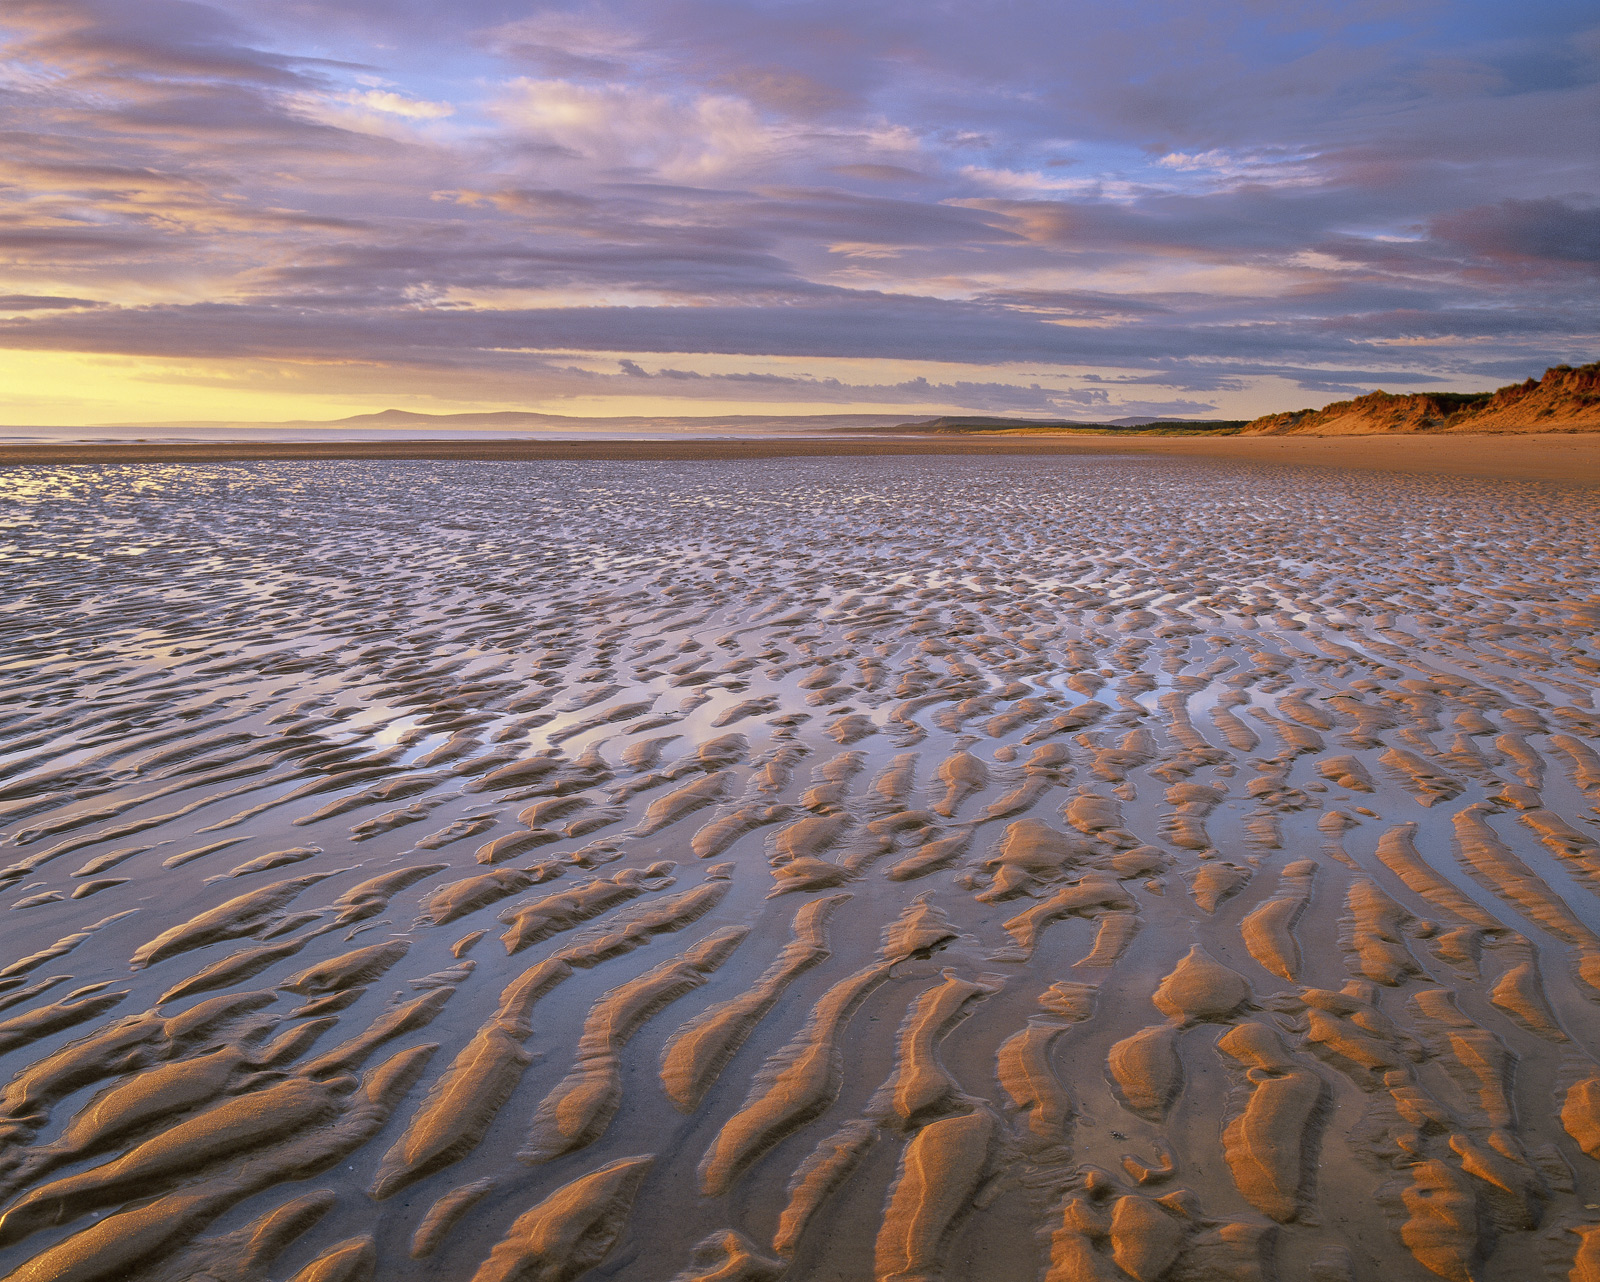 Lines of rippled sand stretch away into the distance on Lossiemouth's east beach backed by dunes. As the sun creeps above...